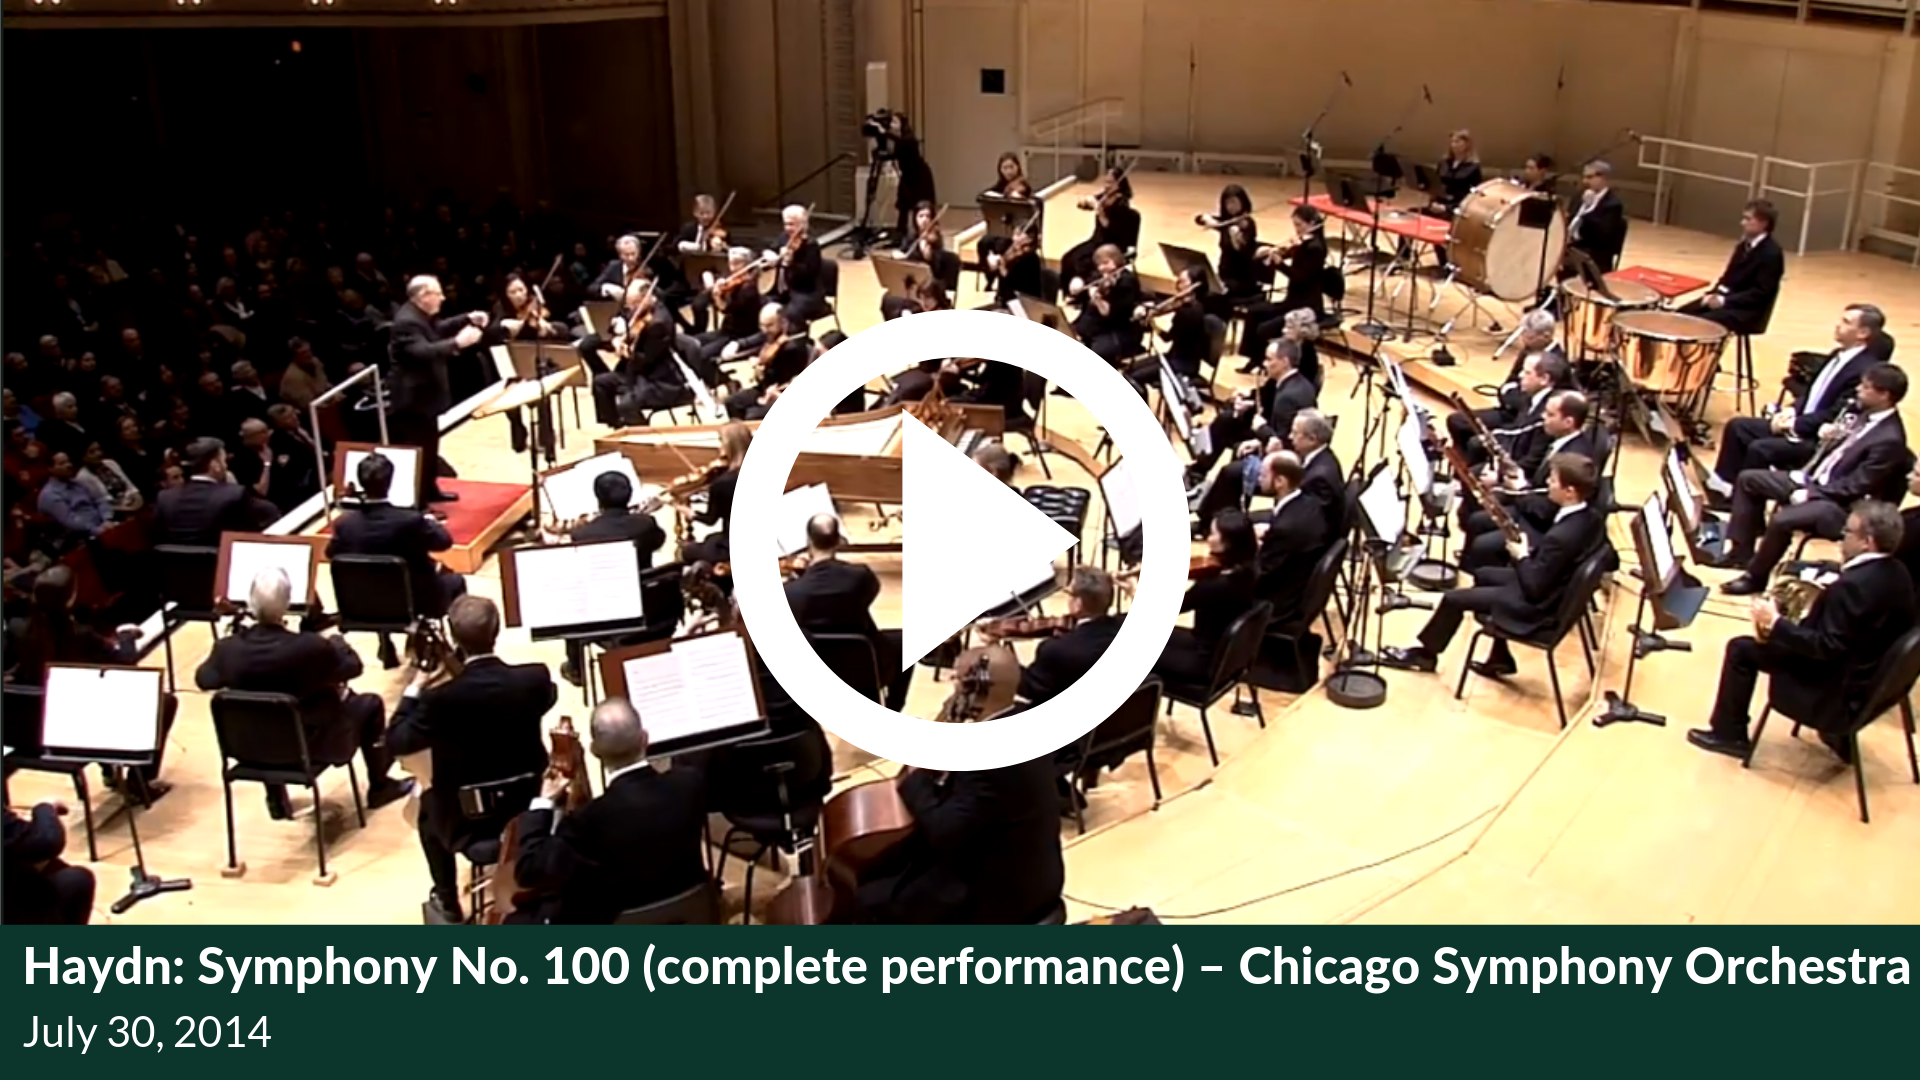 Haydn: Symphony No. 100 (complete performance) – Chicago Symphony Orchestra